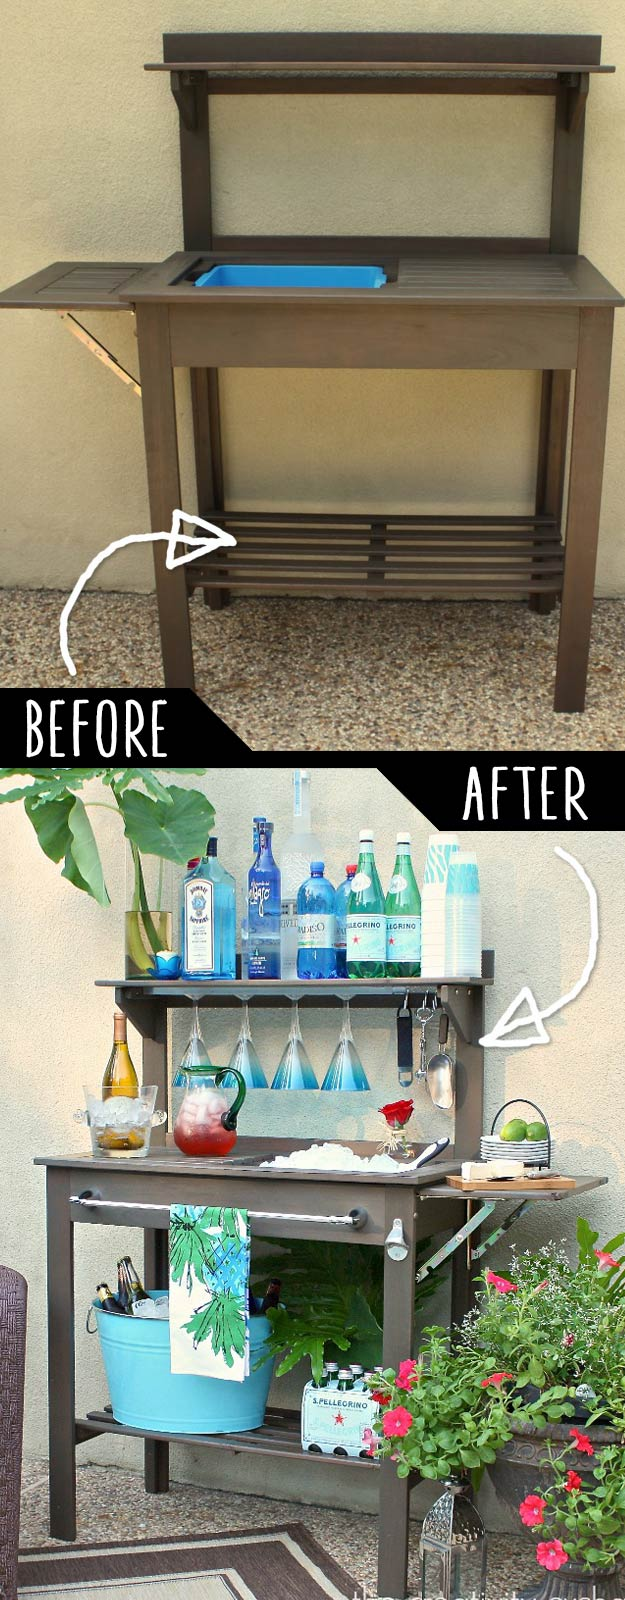 DIY Furniture Hacks   Potting Bench Turned Outdoor Bar   Cool Ideas for Creative Do It Yourself Furniture Made From Things You Might Not Expect #diy